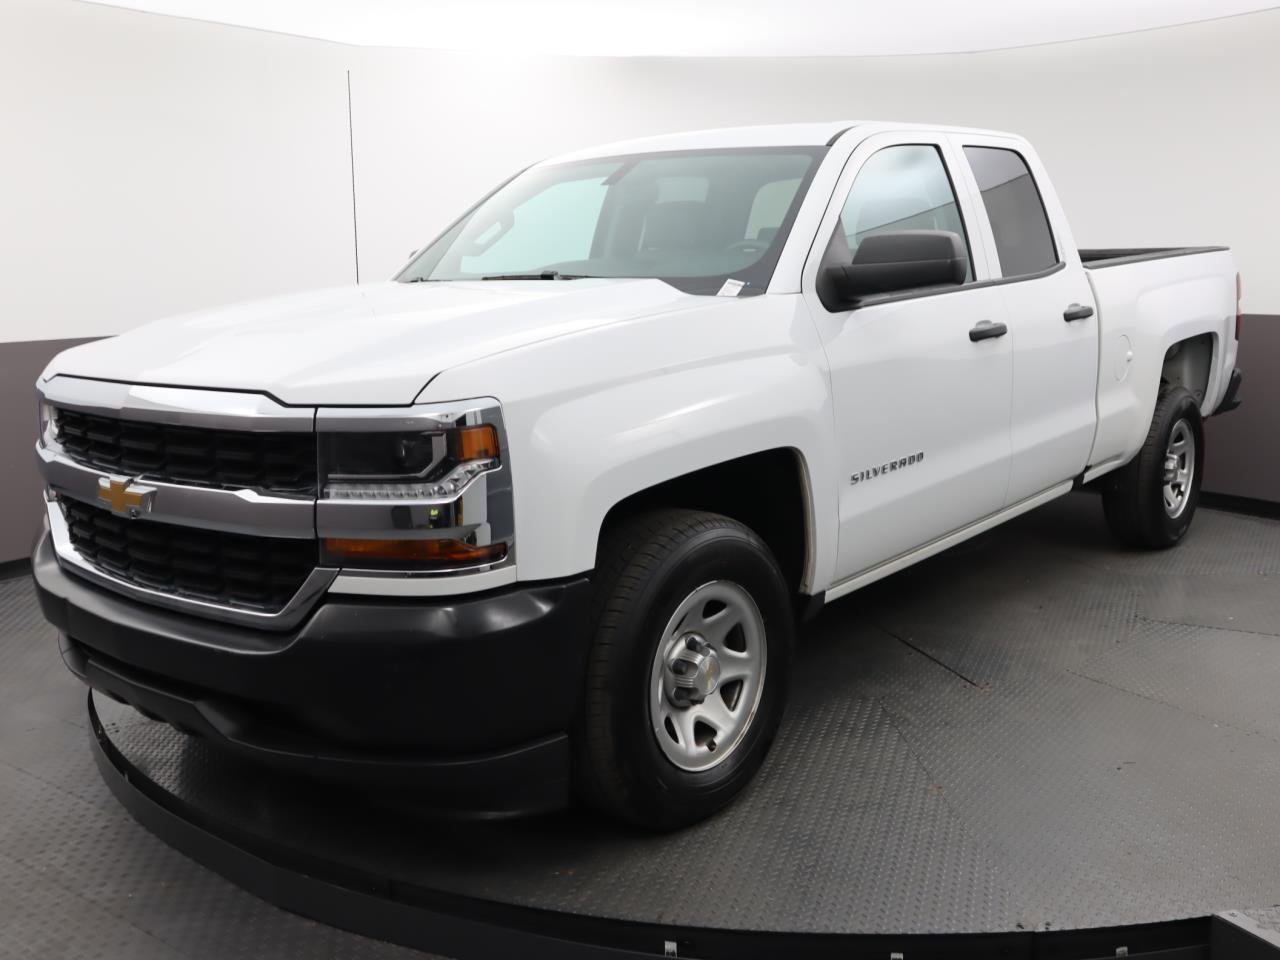 Used CHEVROLET SILVERADO-1500 2018 MIAMI WORK TRUCK